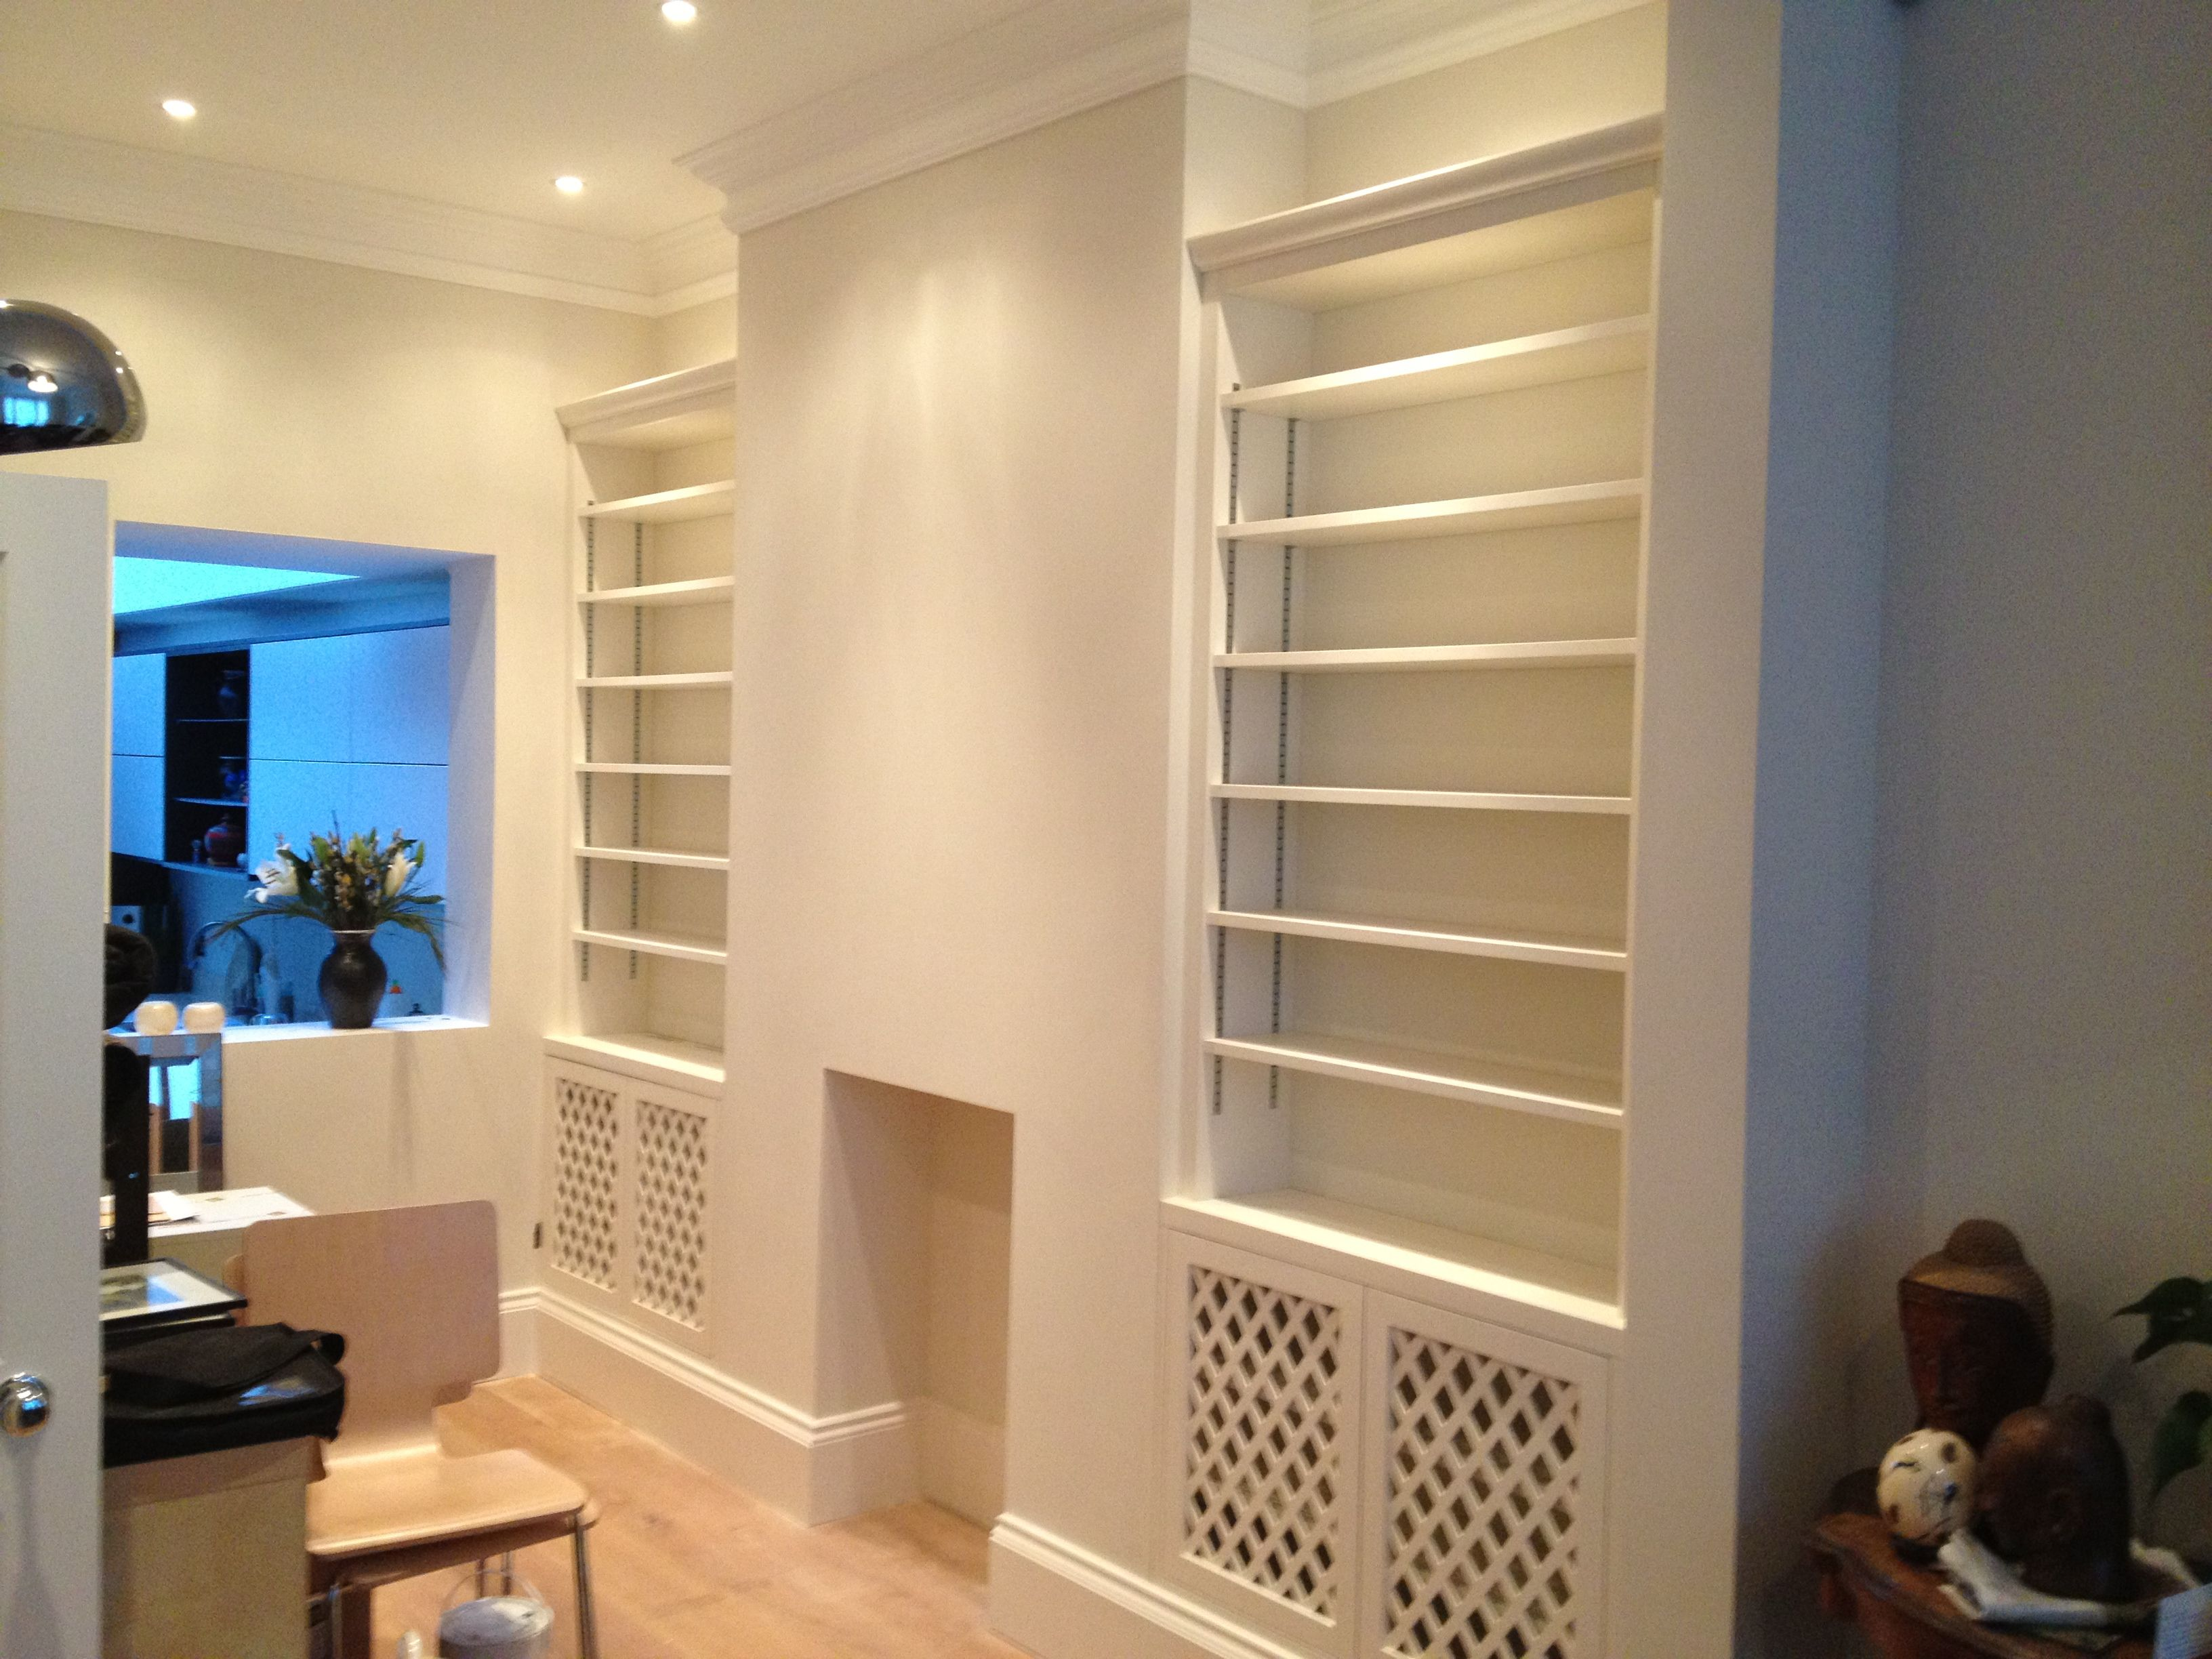 Alcove Cupboards And Shelving Units Installed This Week In